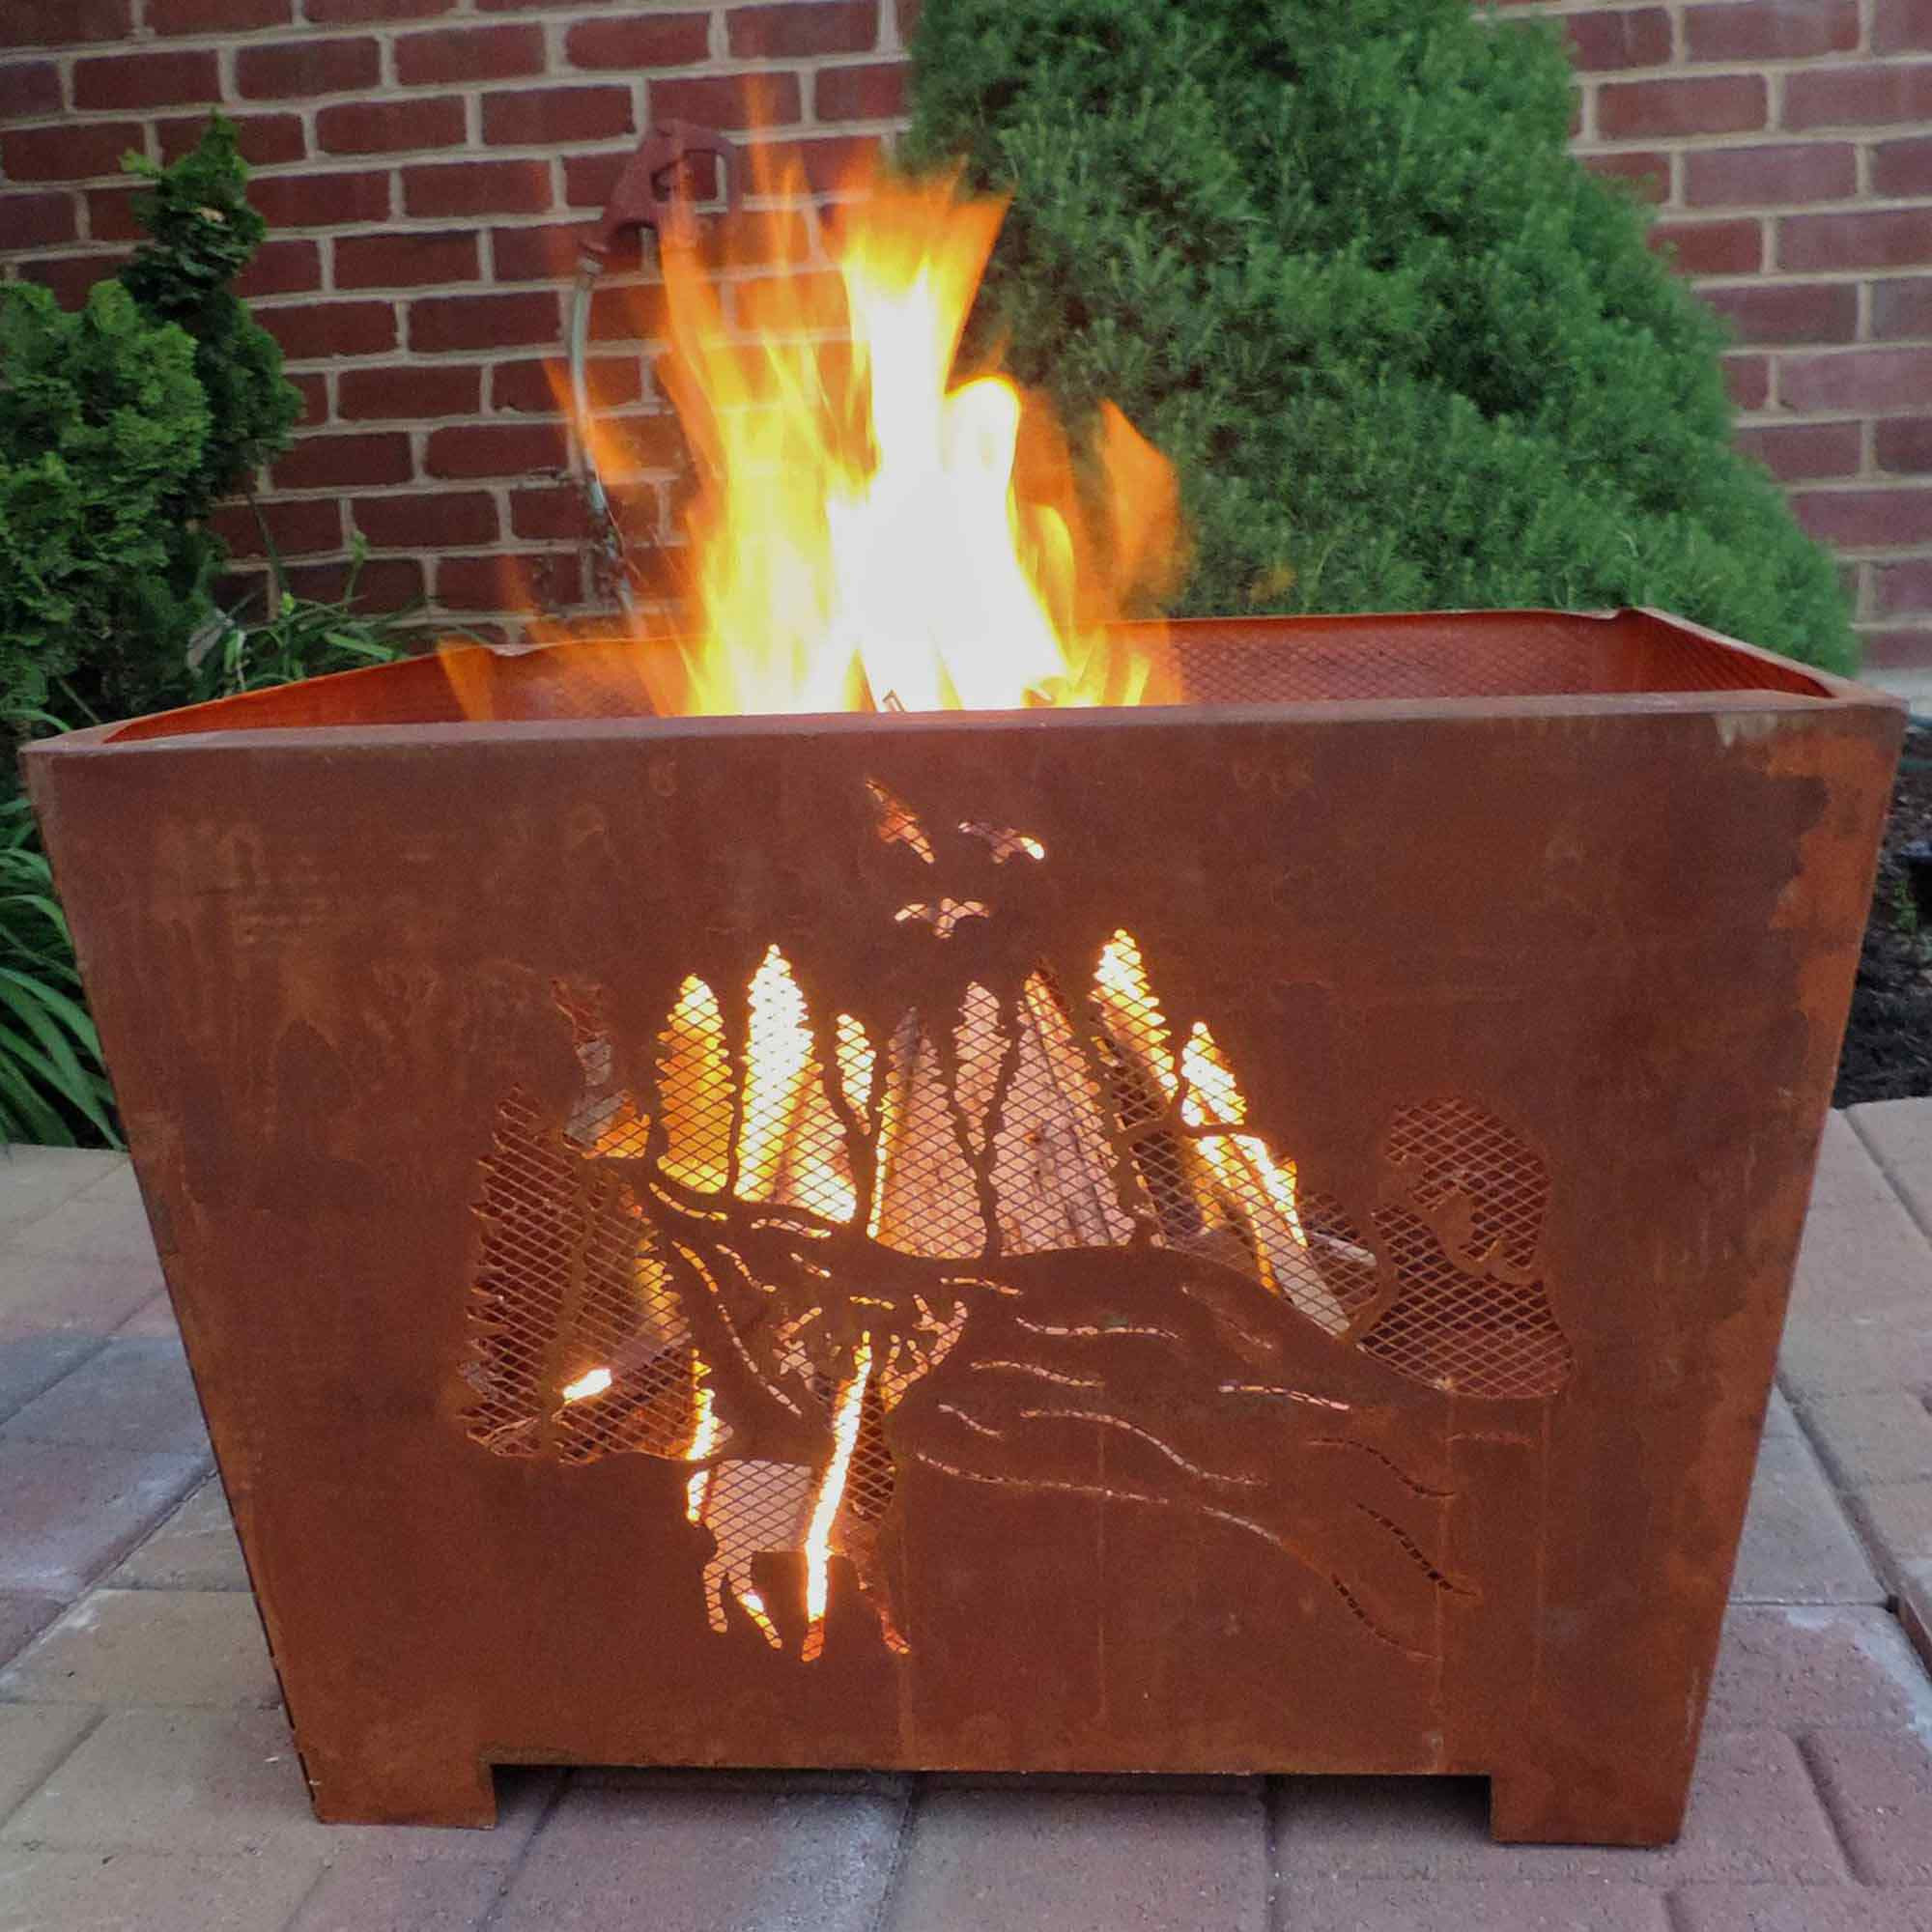 Nature Scene Fire Basket With Rust Metal Finish By Esschert Designs